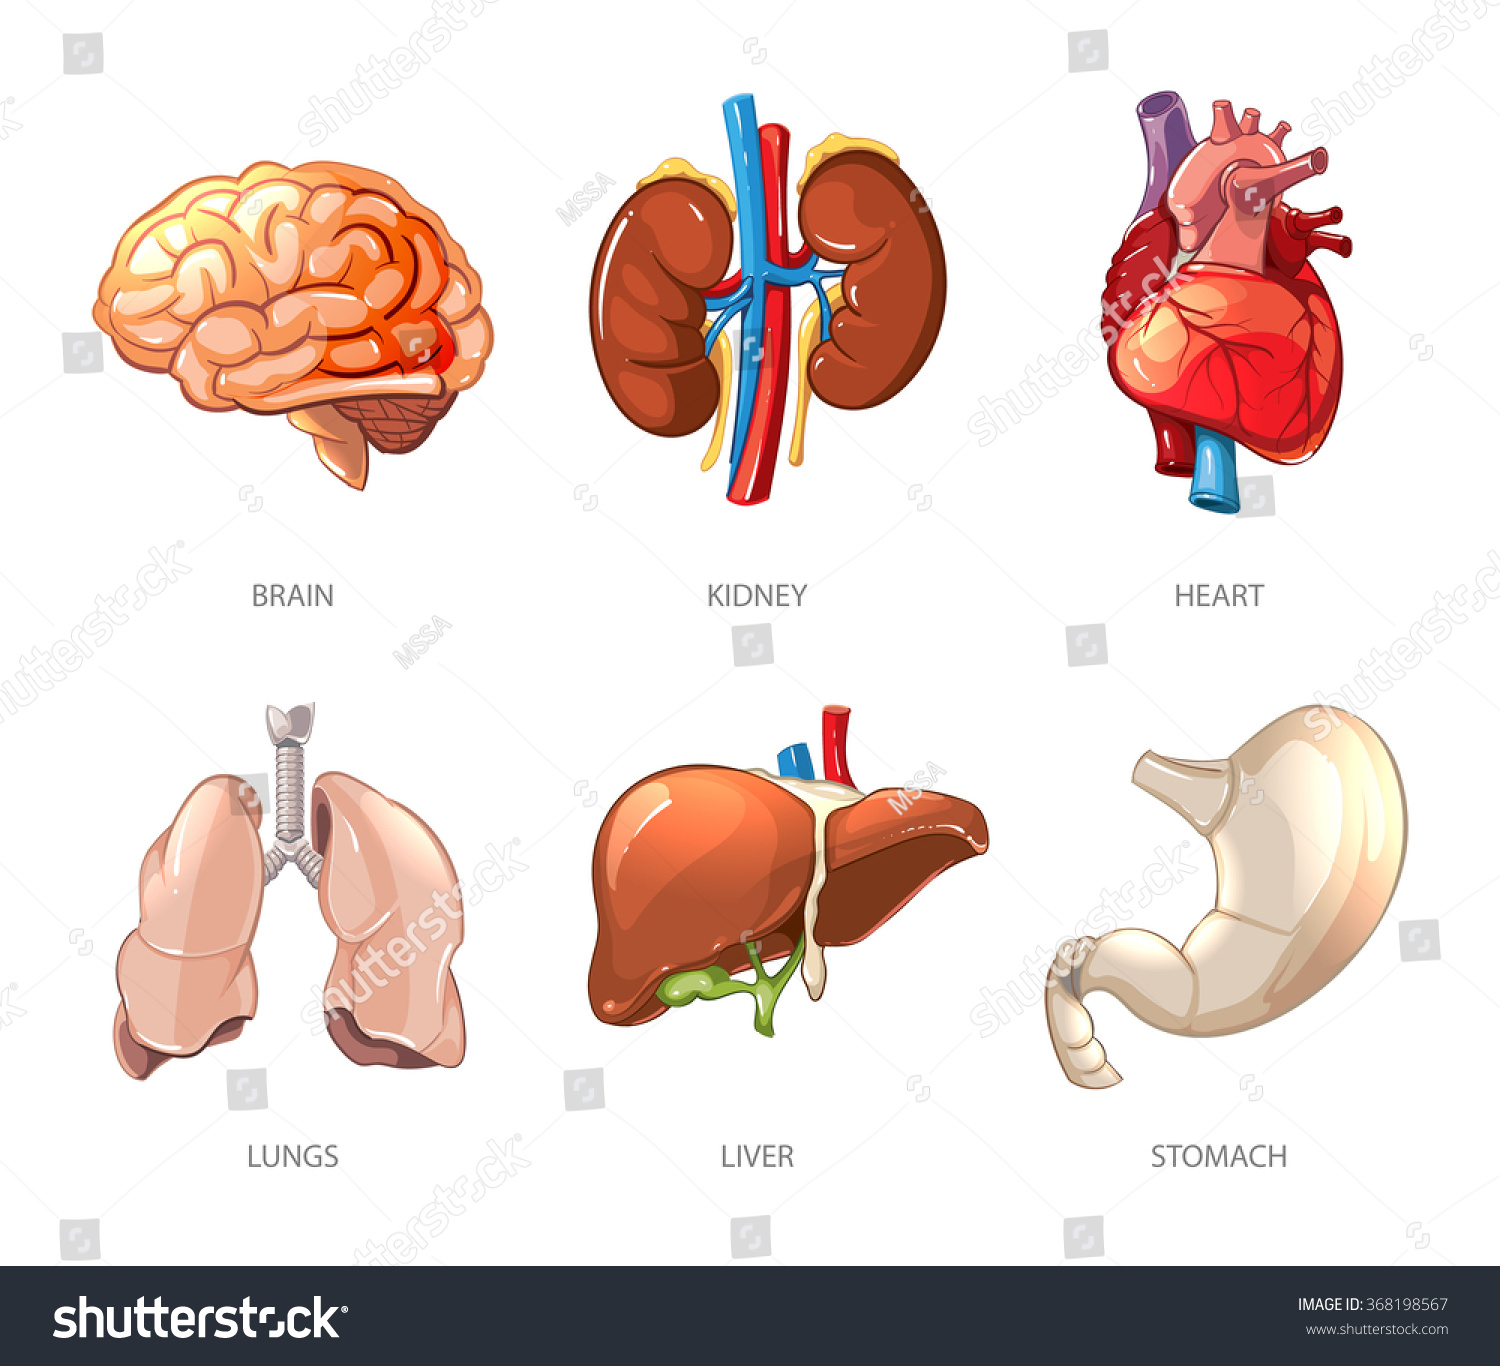 Human Internal Organs Anatomy Cartoon Vector Stock Vector